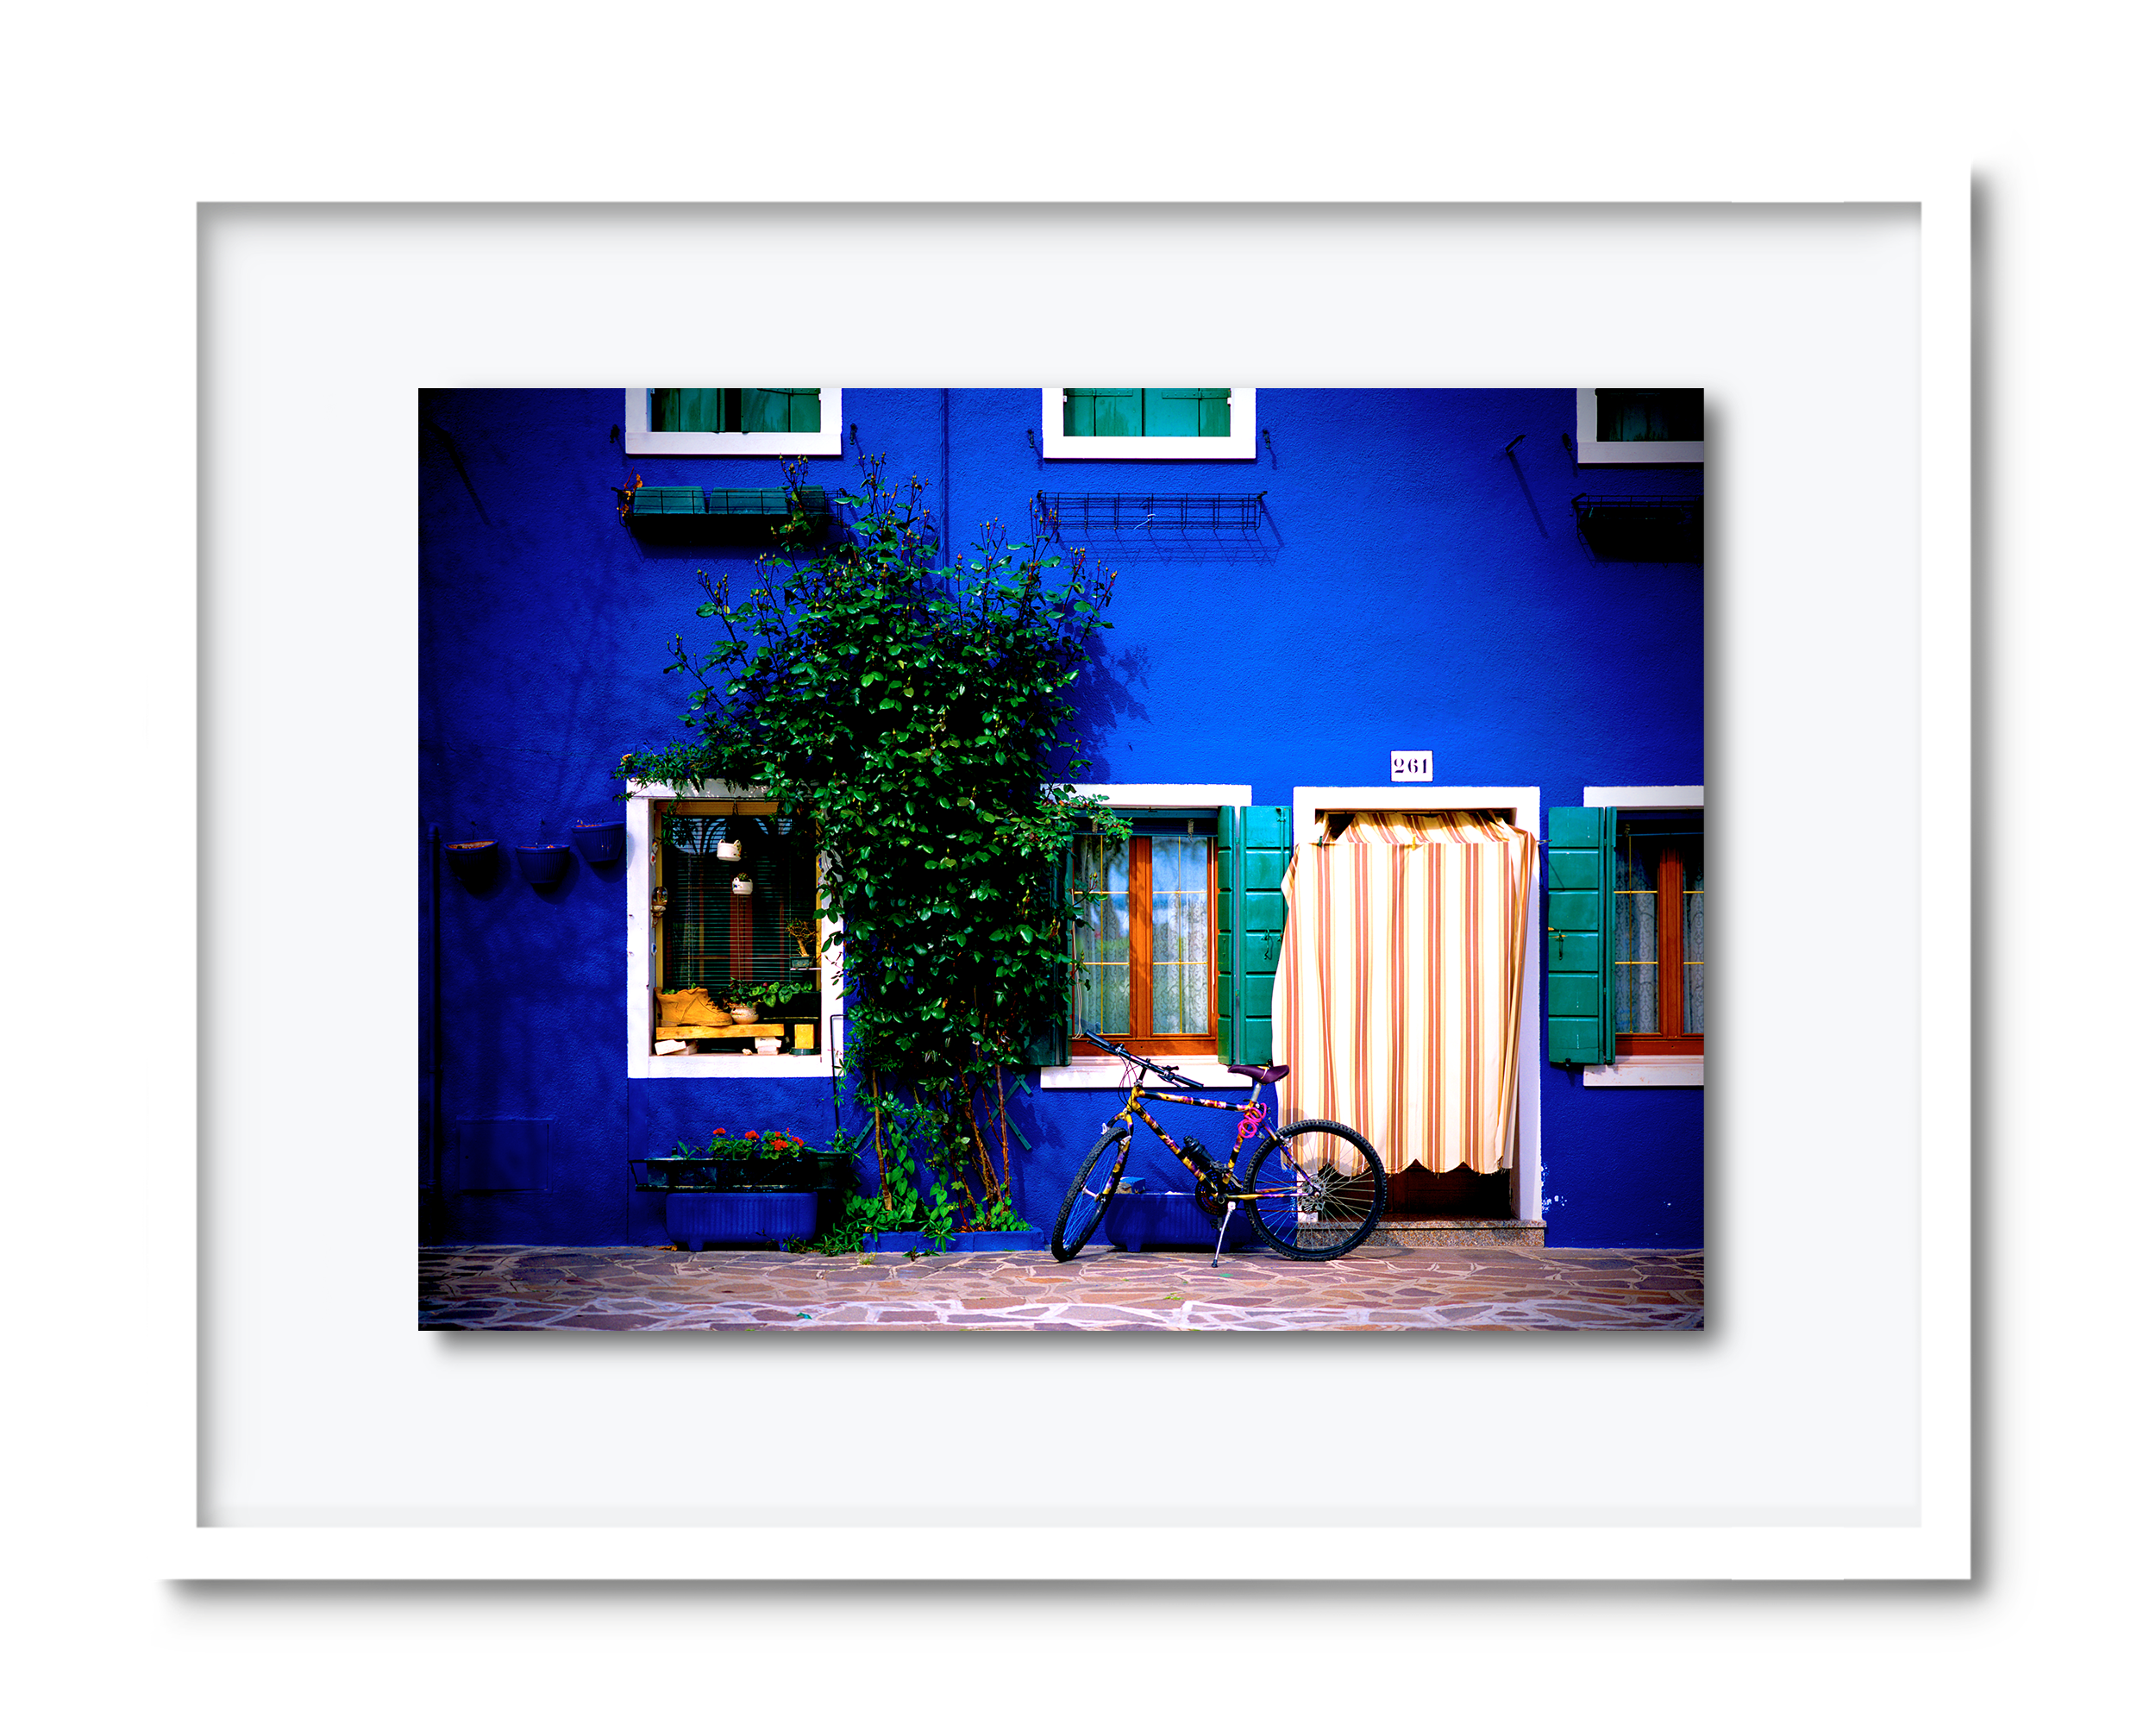 9.david-pearce-colored-building-venice3.png